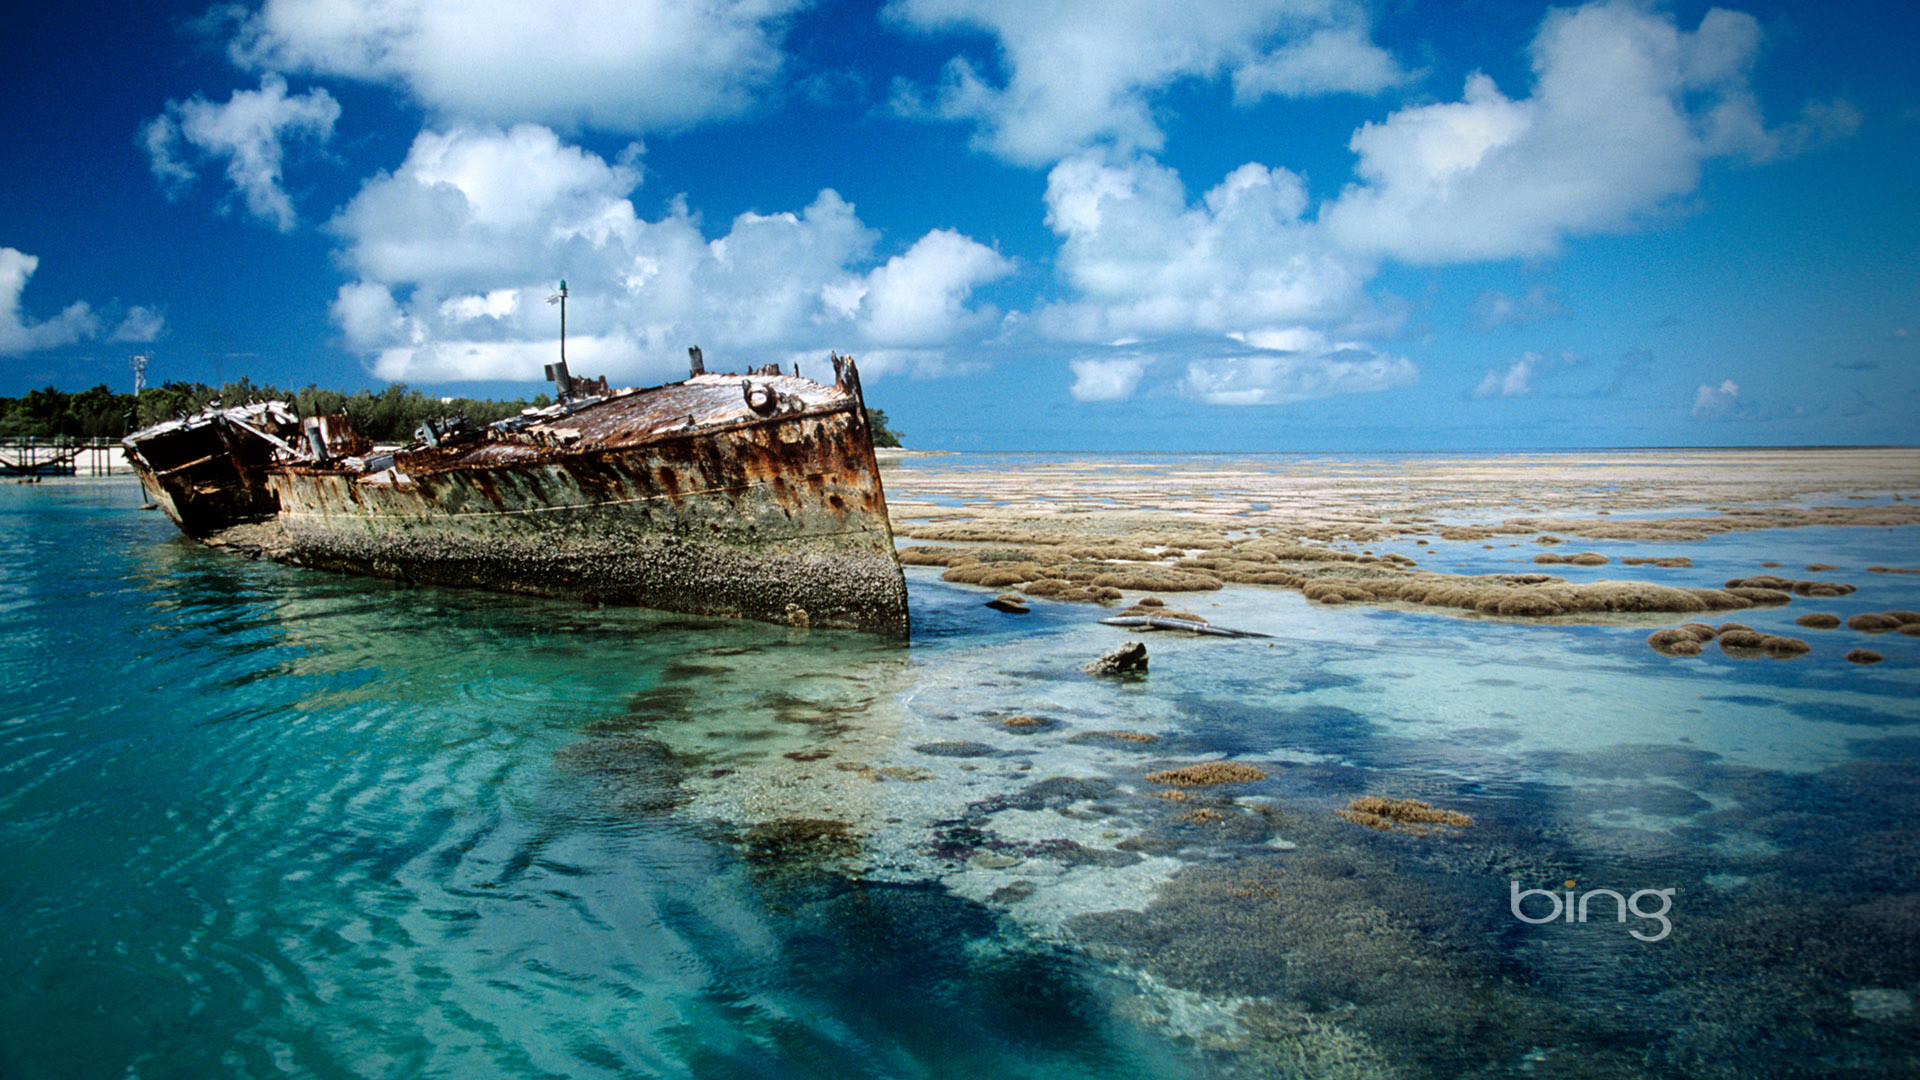 1920x1080 Bing Shipwreck on Heron Island desktop background Australia full hd.